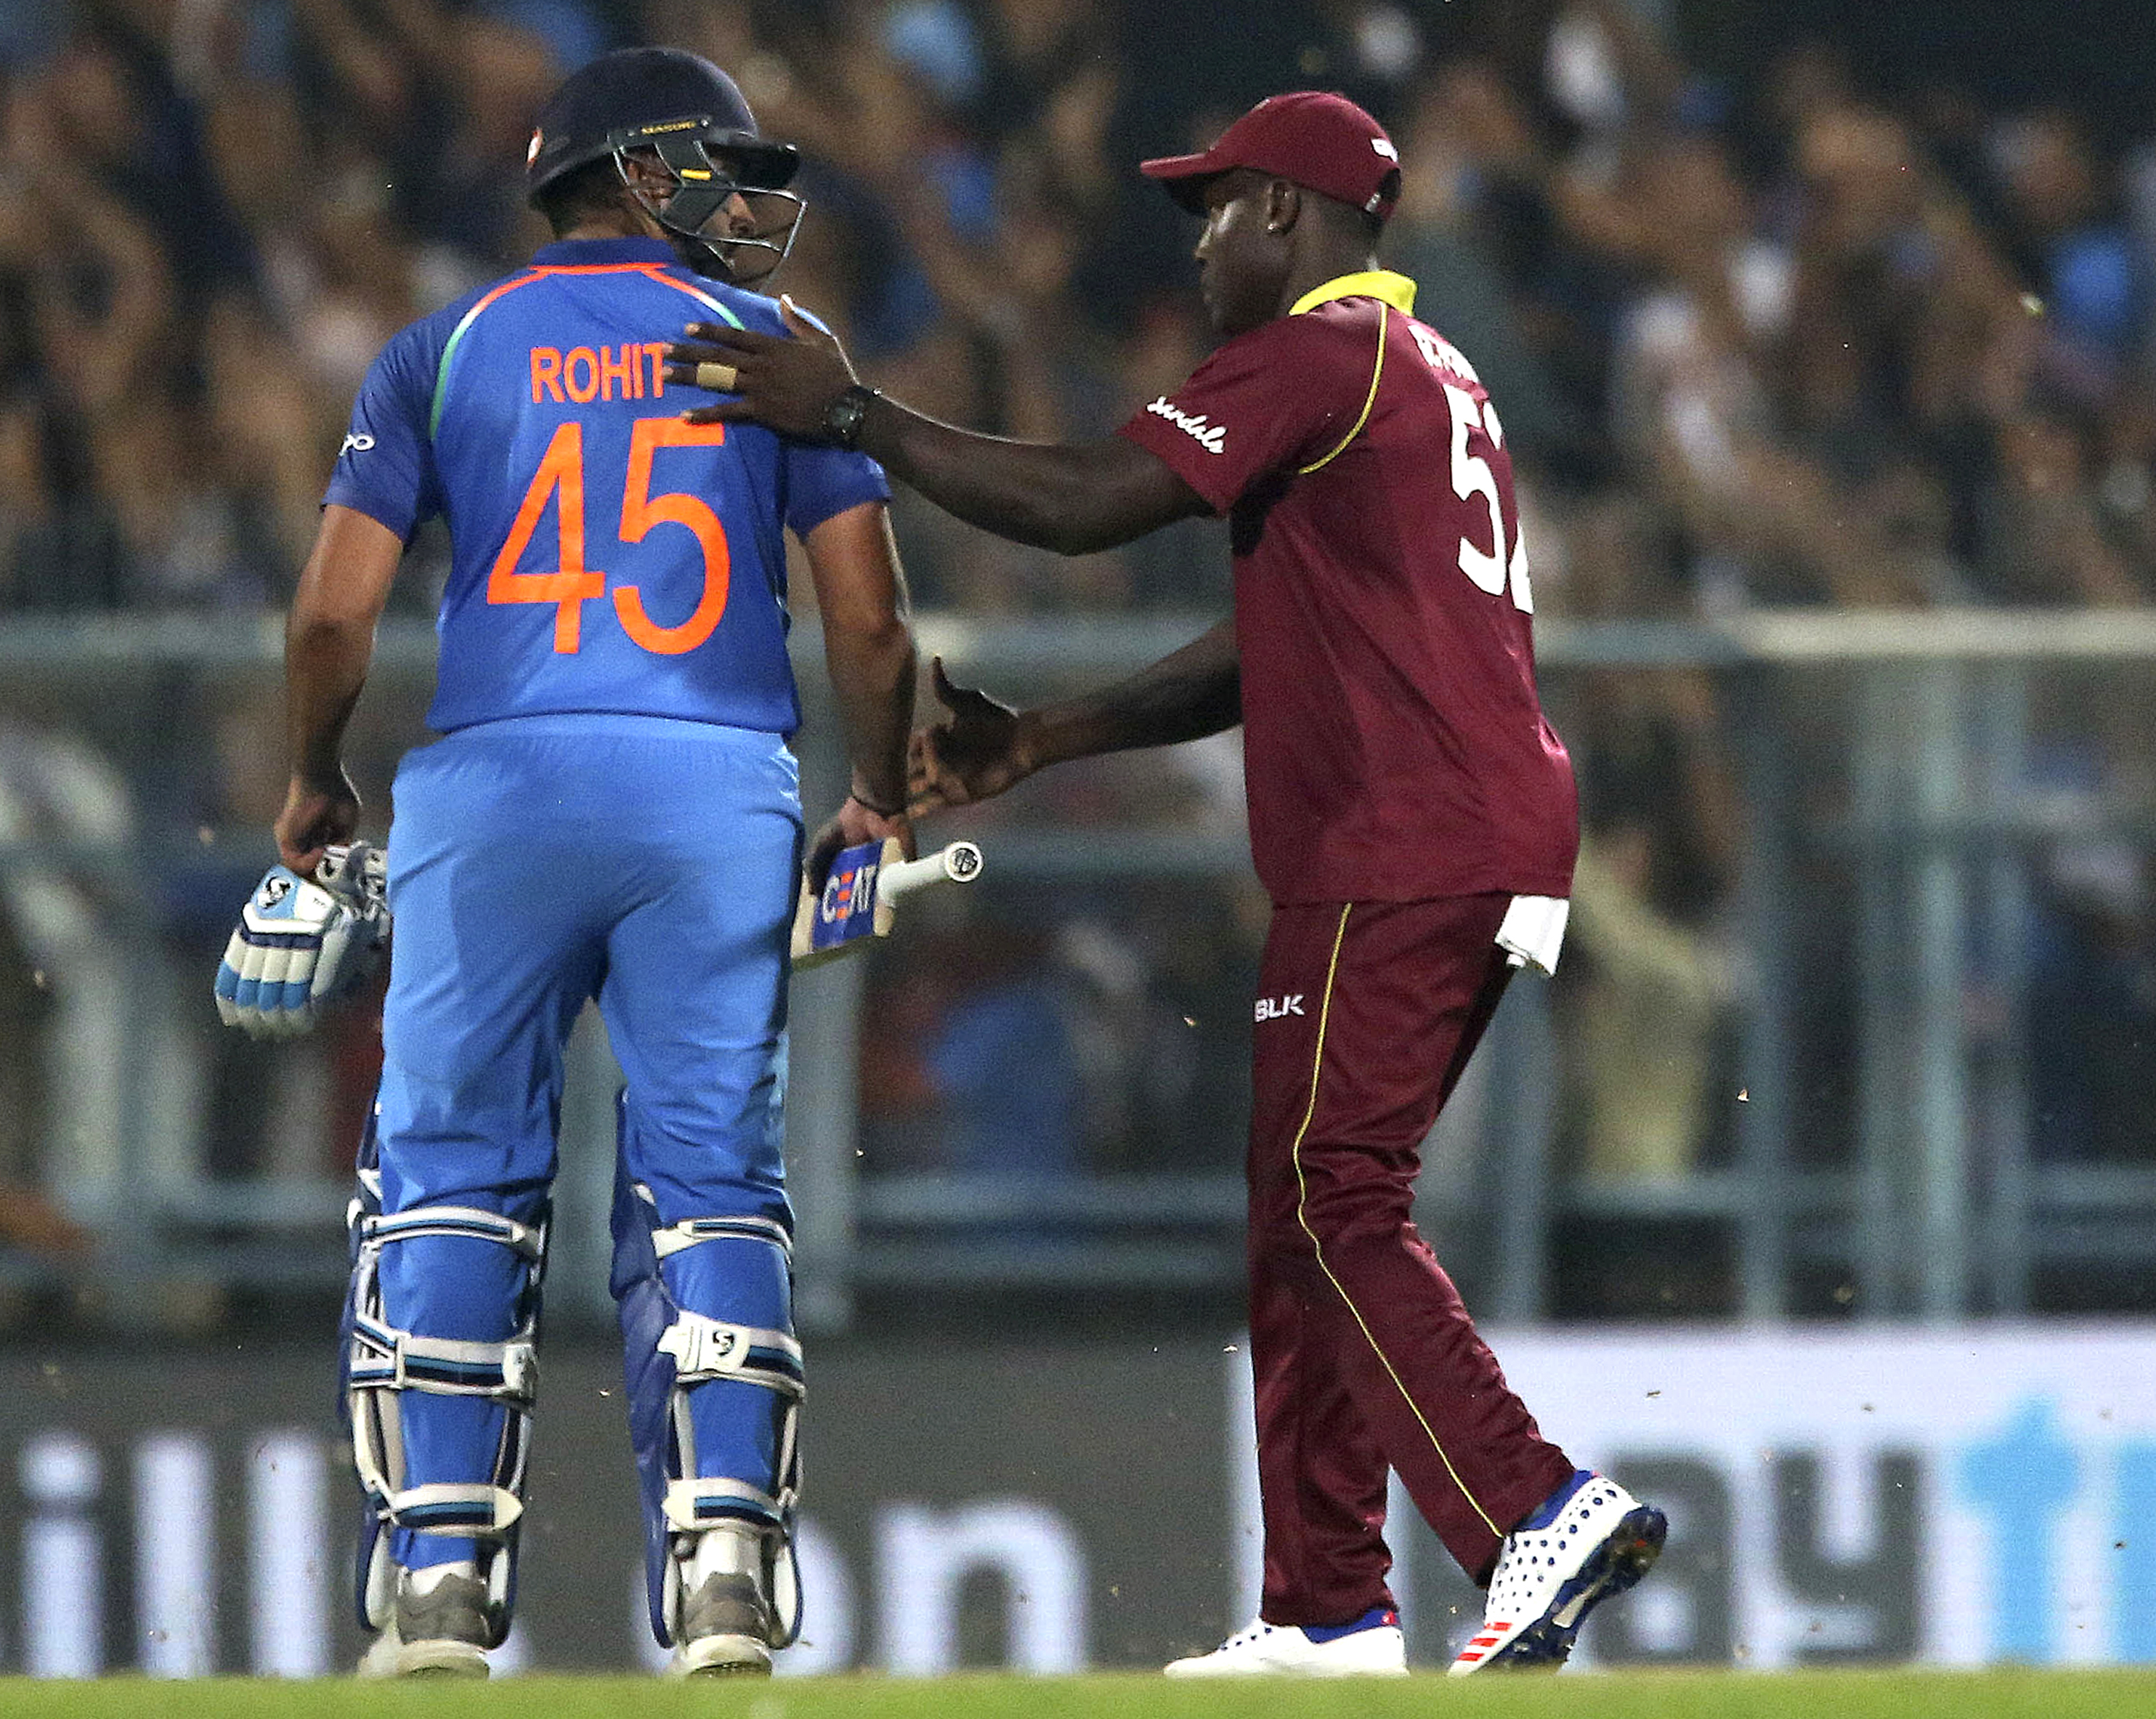 West Indies' Rovman Powell, right, greets India's Rohit Sharma after India won the first one-day international cricket match between India and West Indies in Gauhati - AP